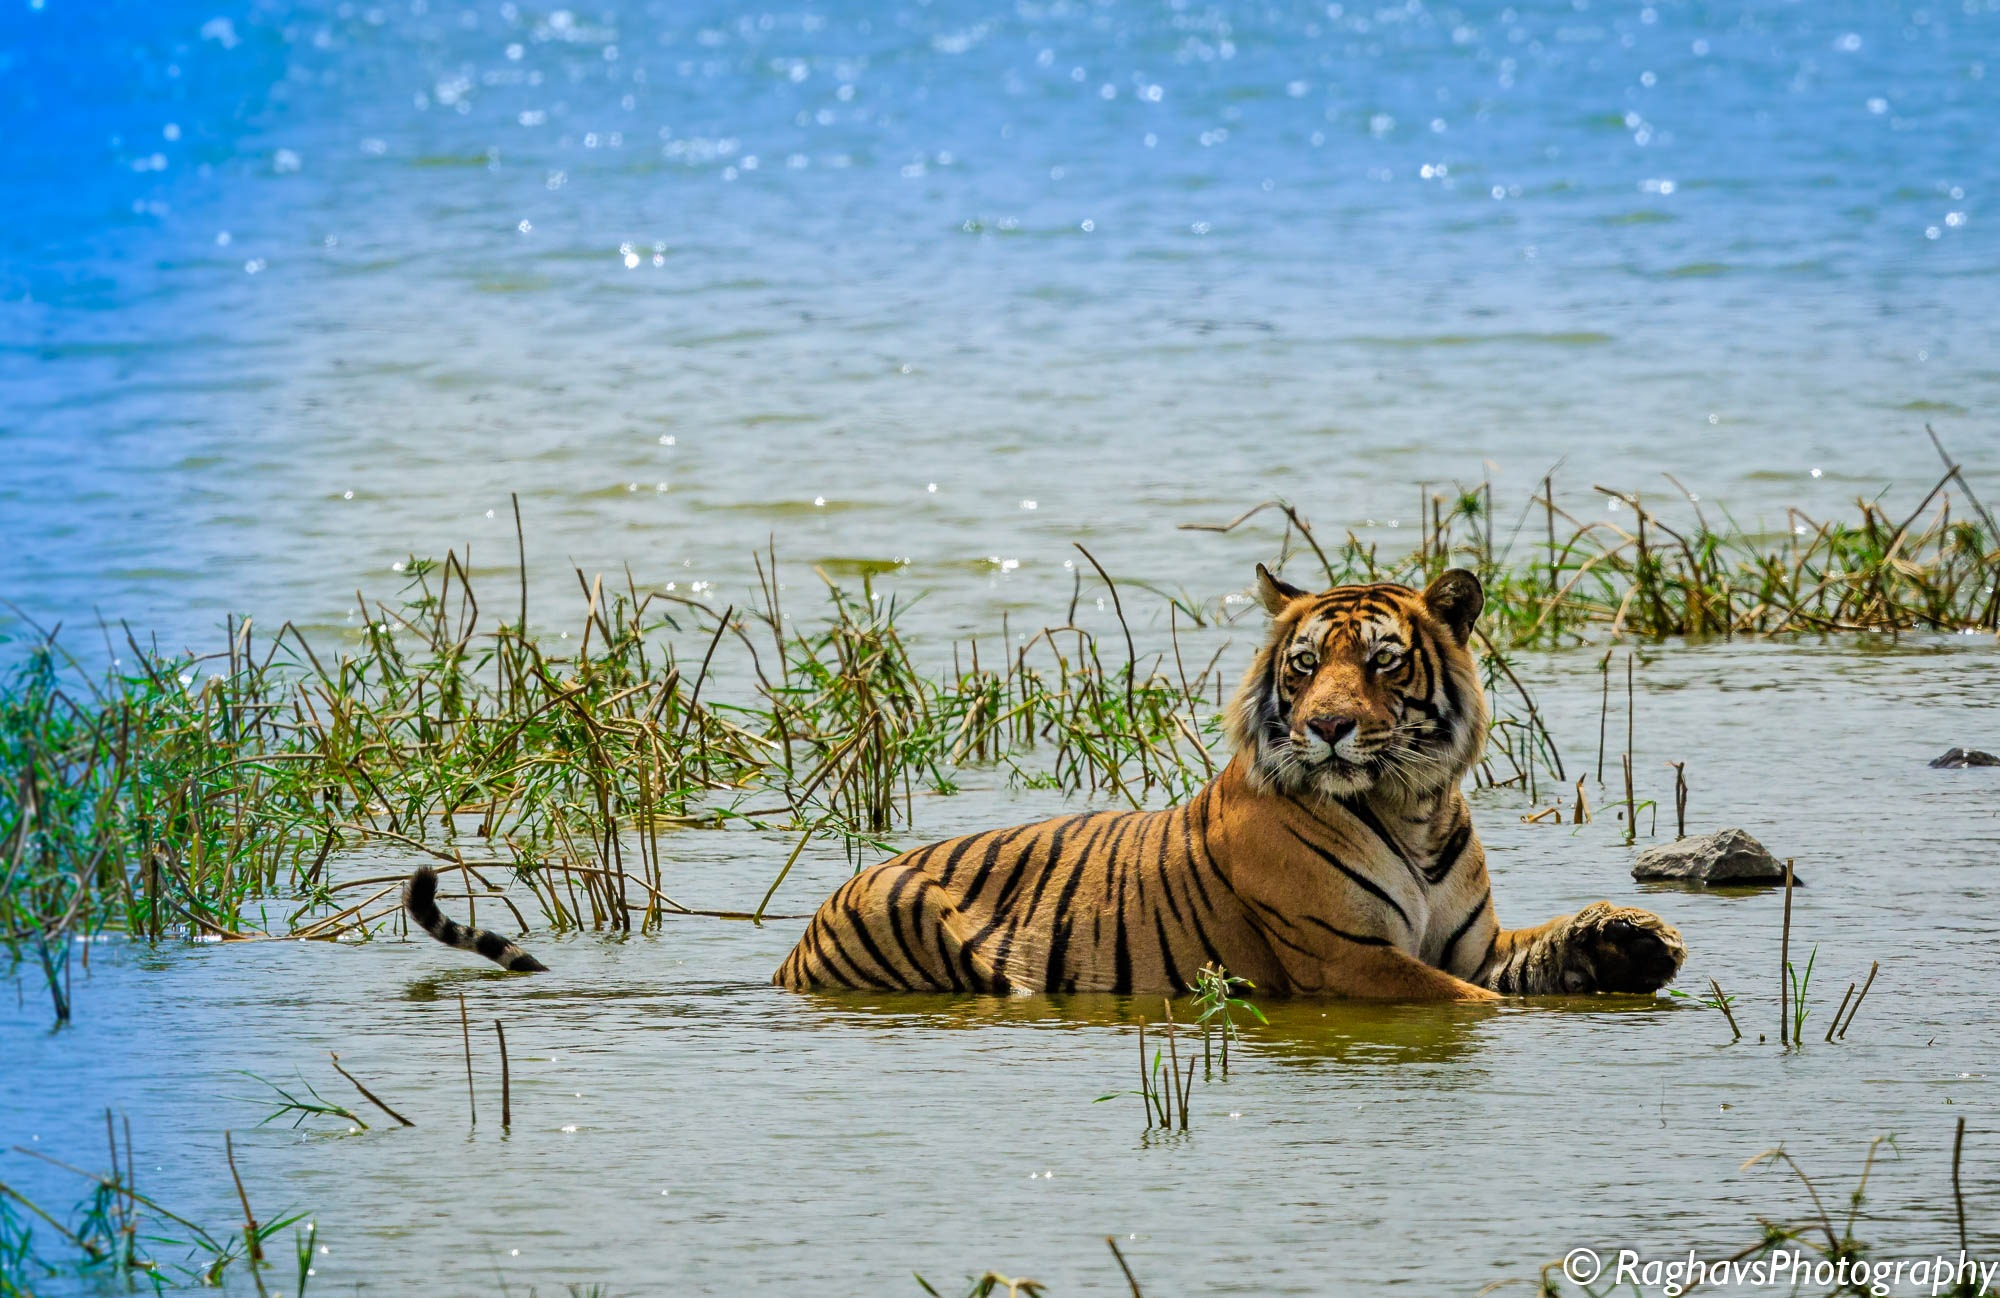 Cooling Off by Raghavendra Joshi